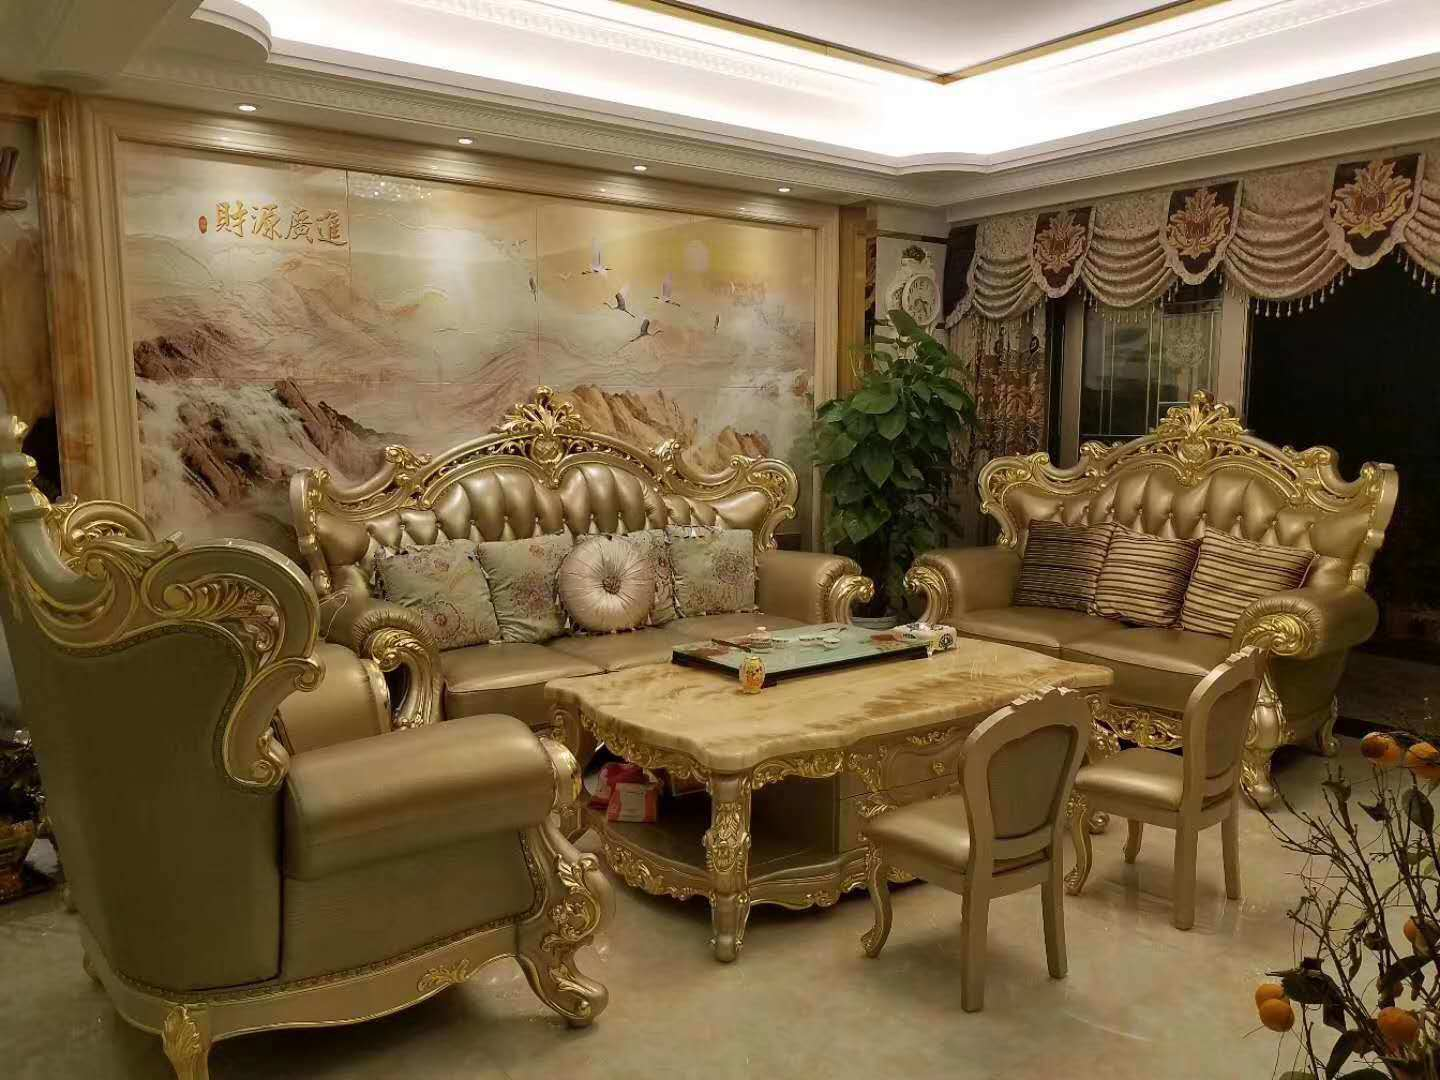 Sofa Sets In Living Room Hot Item Golden Color Luxury Royal Furniture Sets Living Room Leather Sofa 028